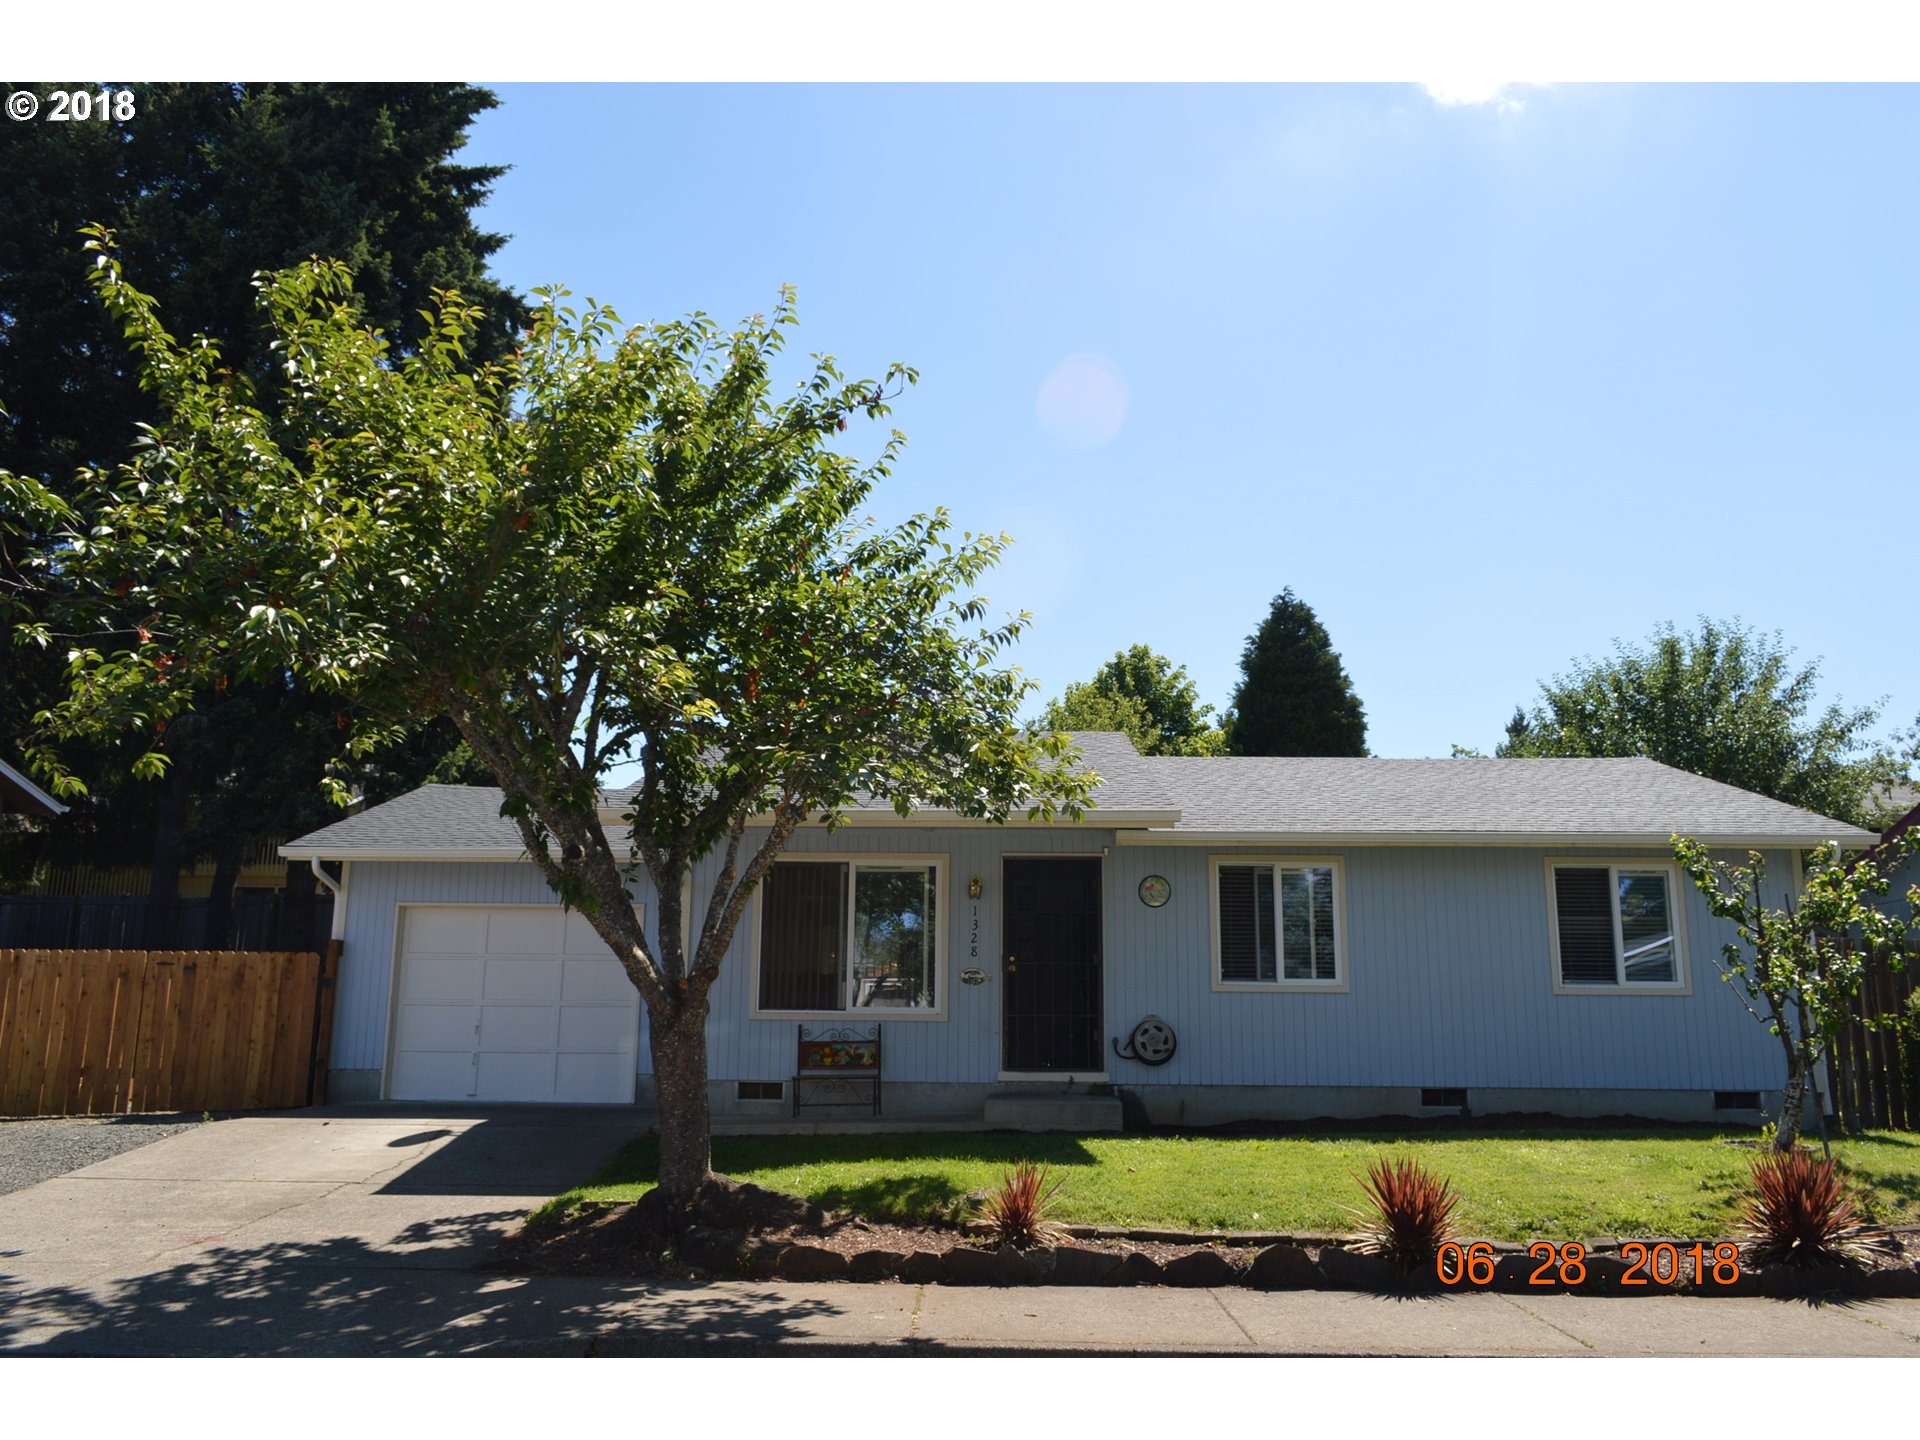 1328 S 7TH ST Cottage Grove, OR 97424 18009729